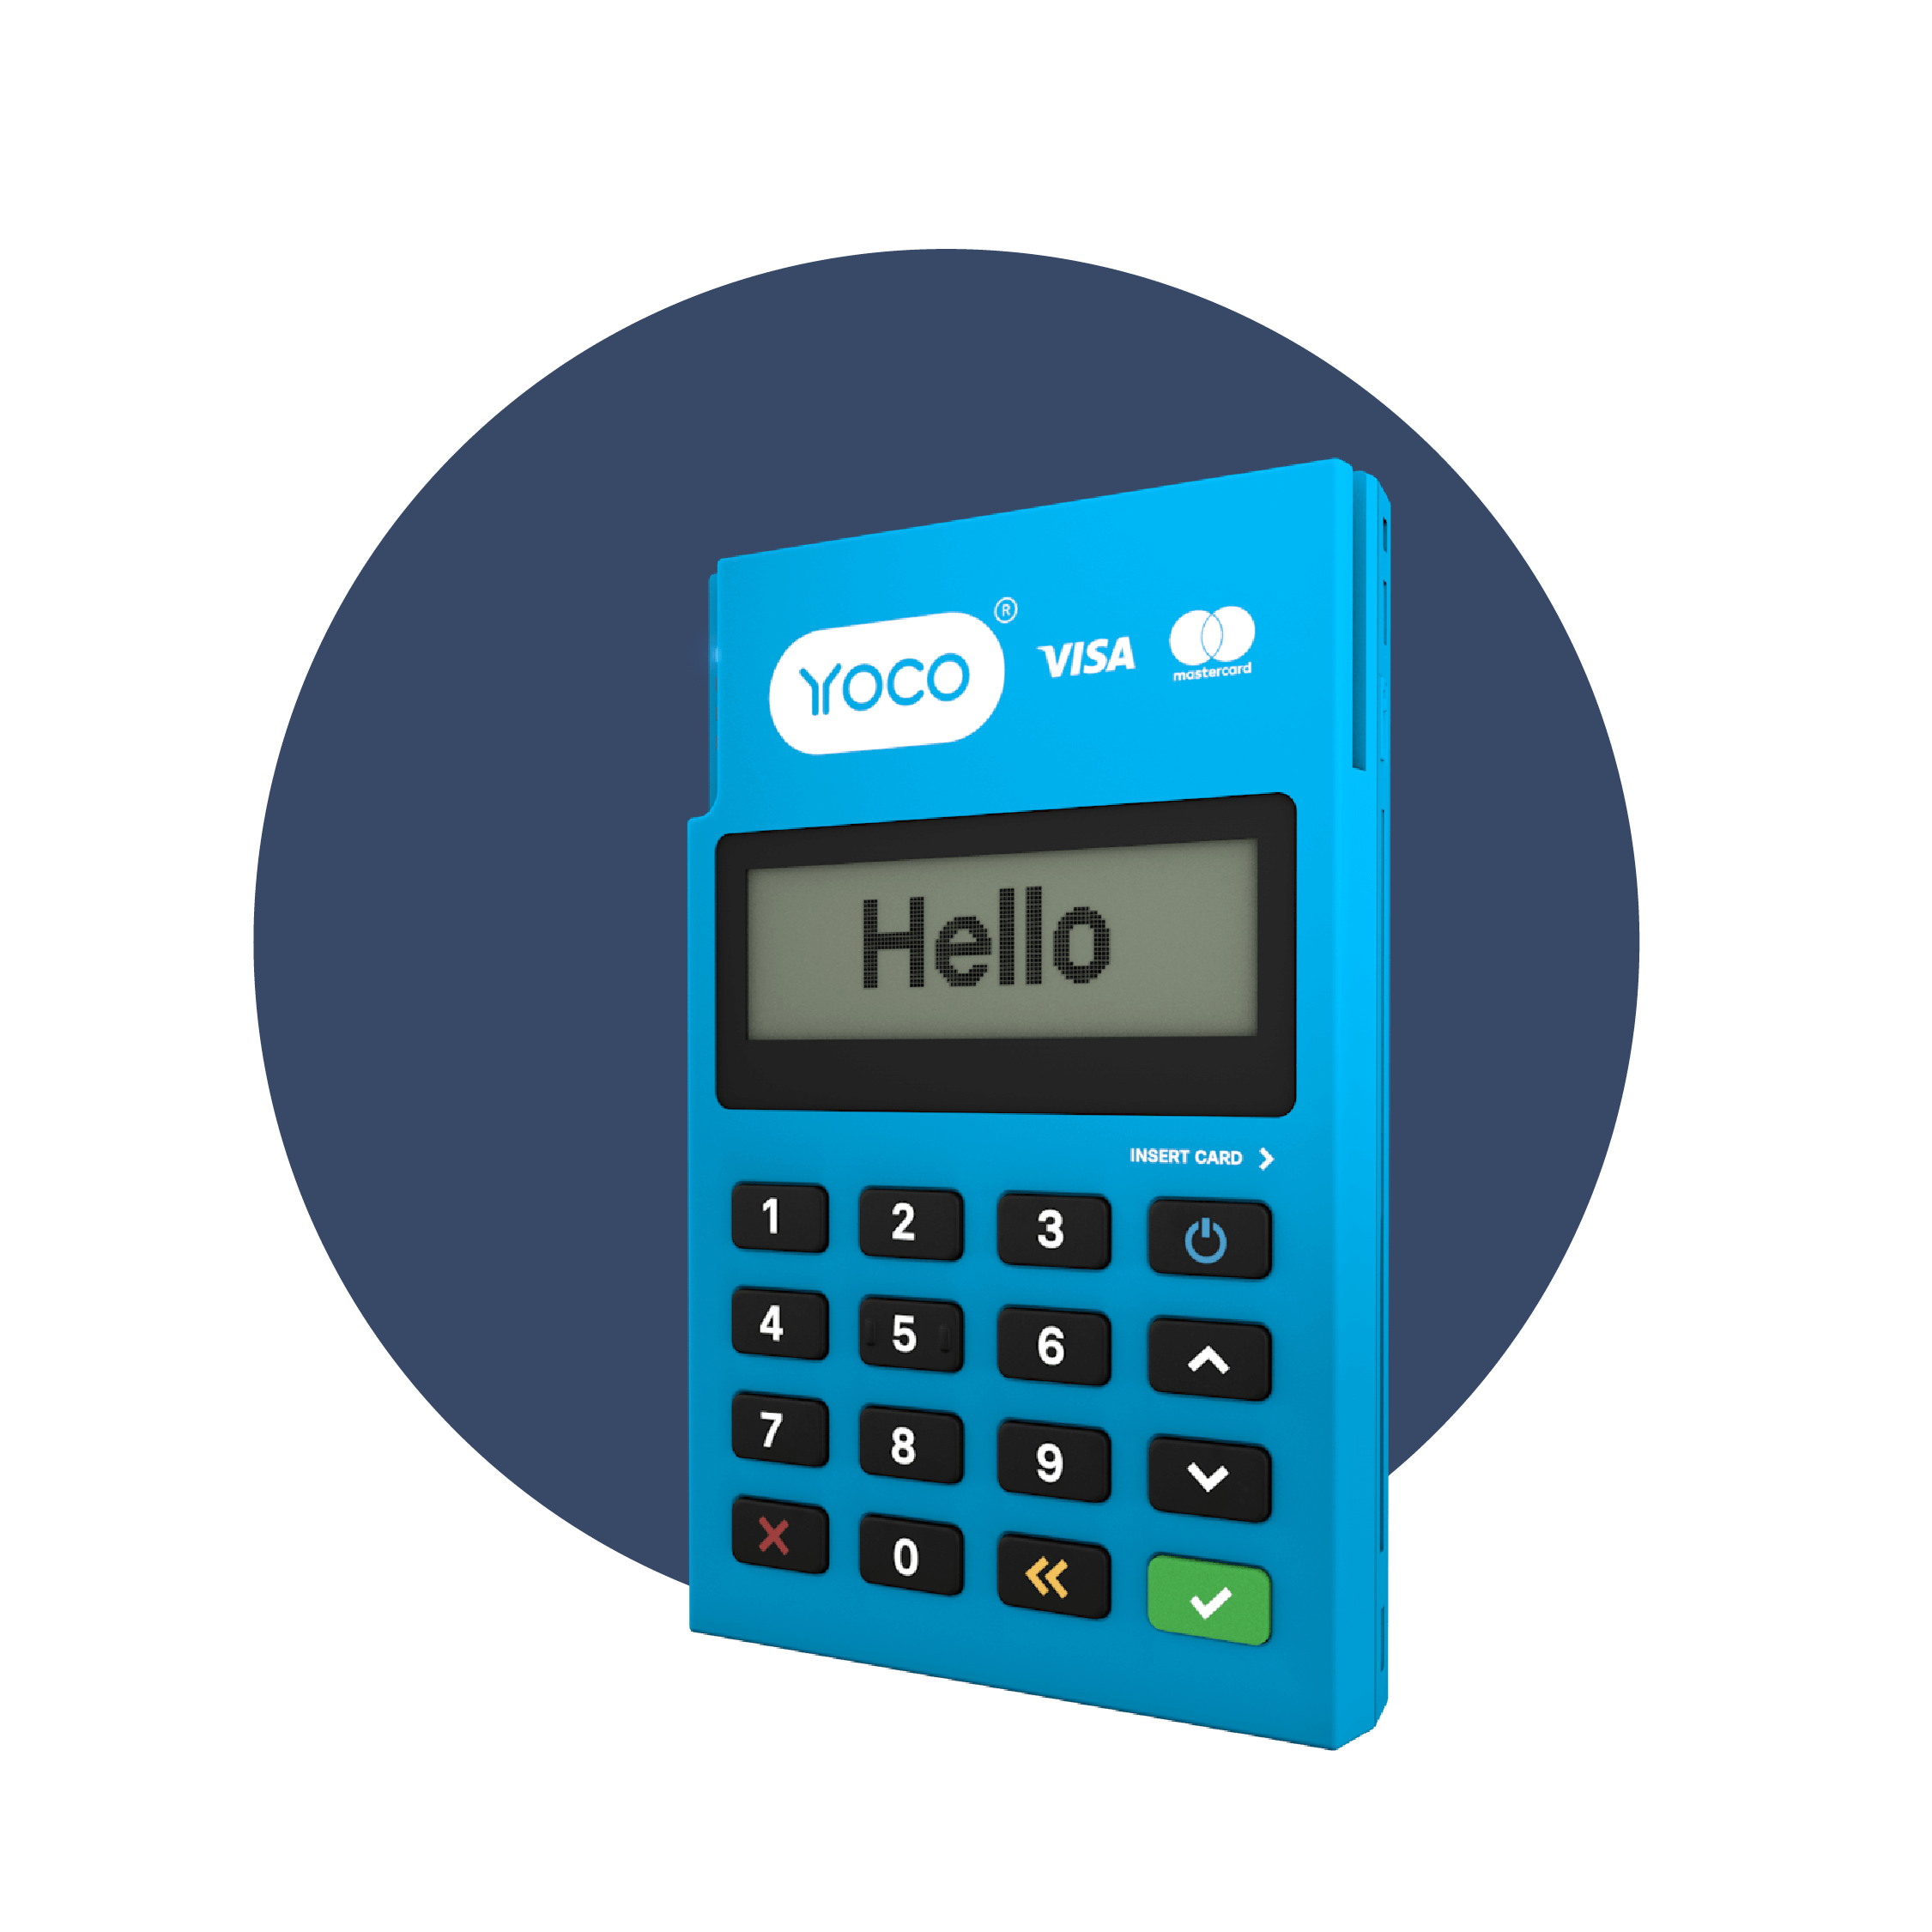 yoco-swipe-machine